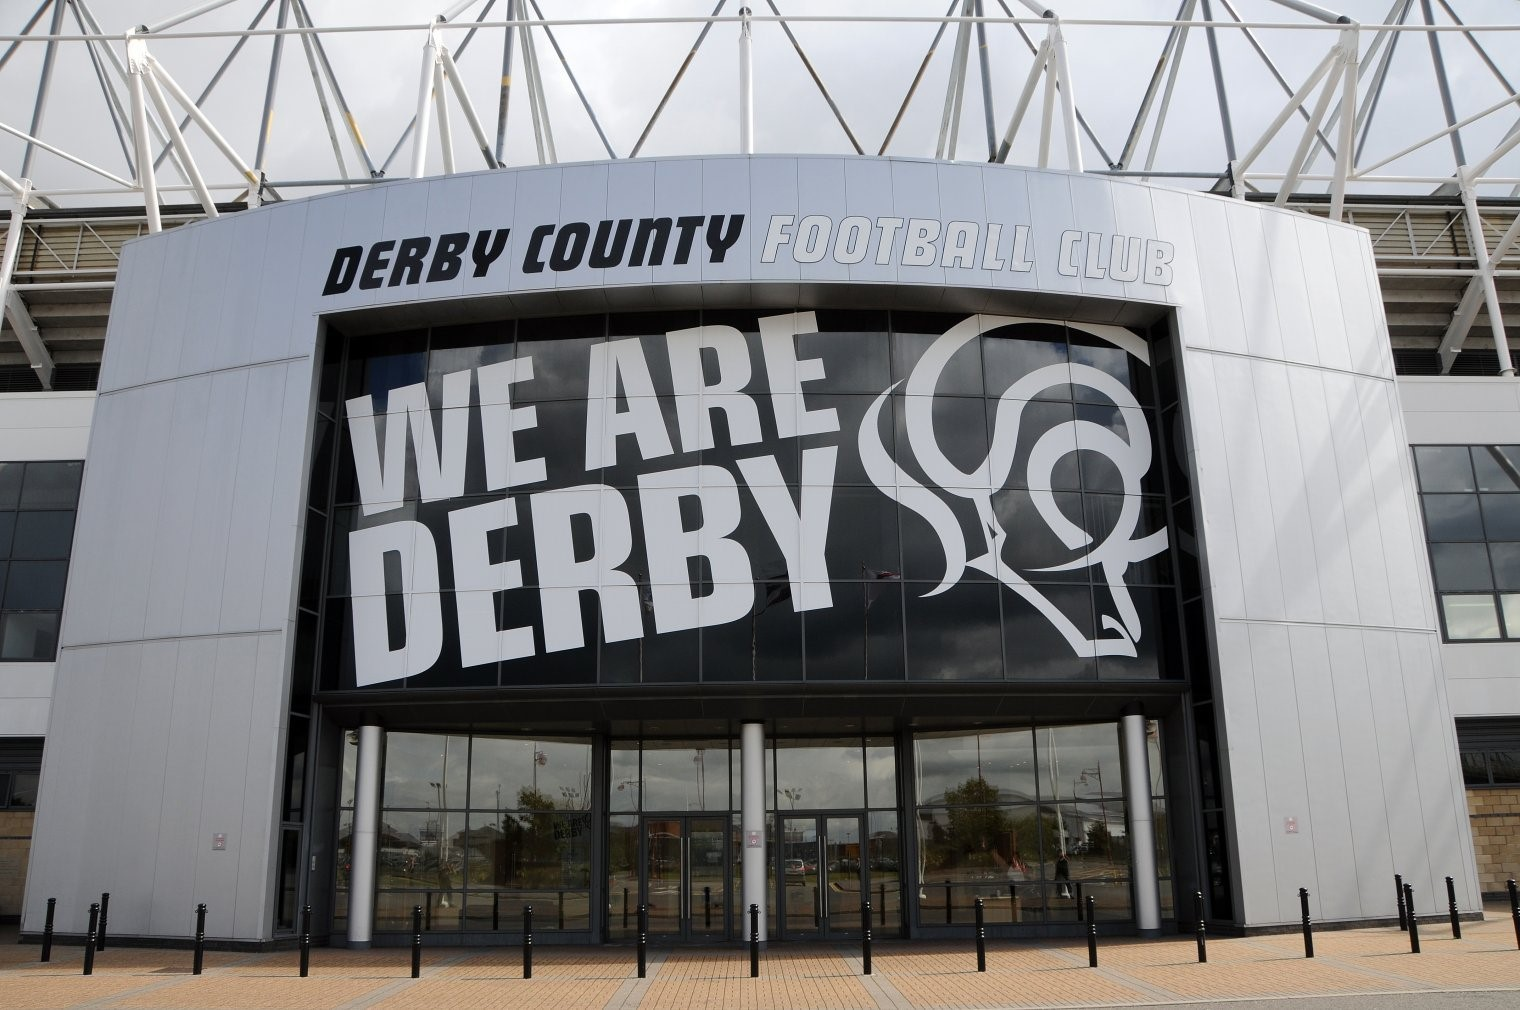 Picture of Ipro Stadium, Derby County Football Club